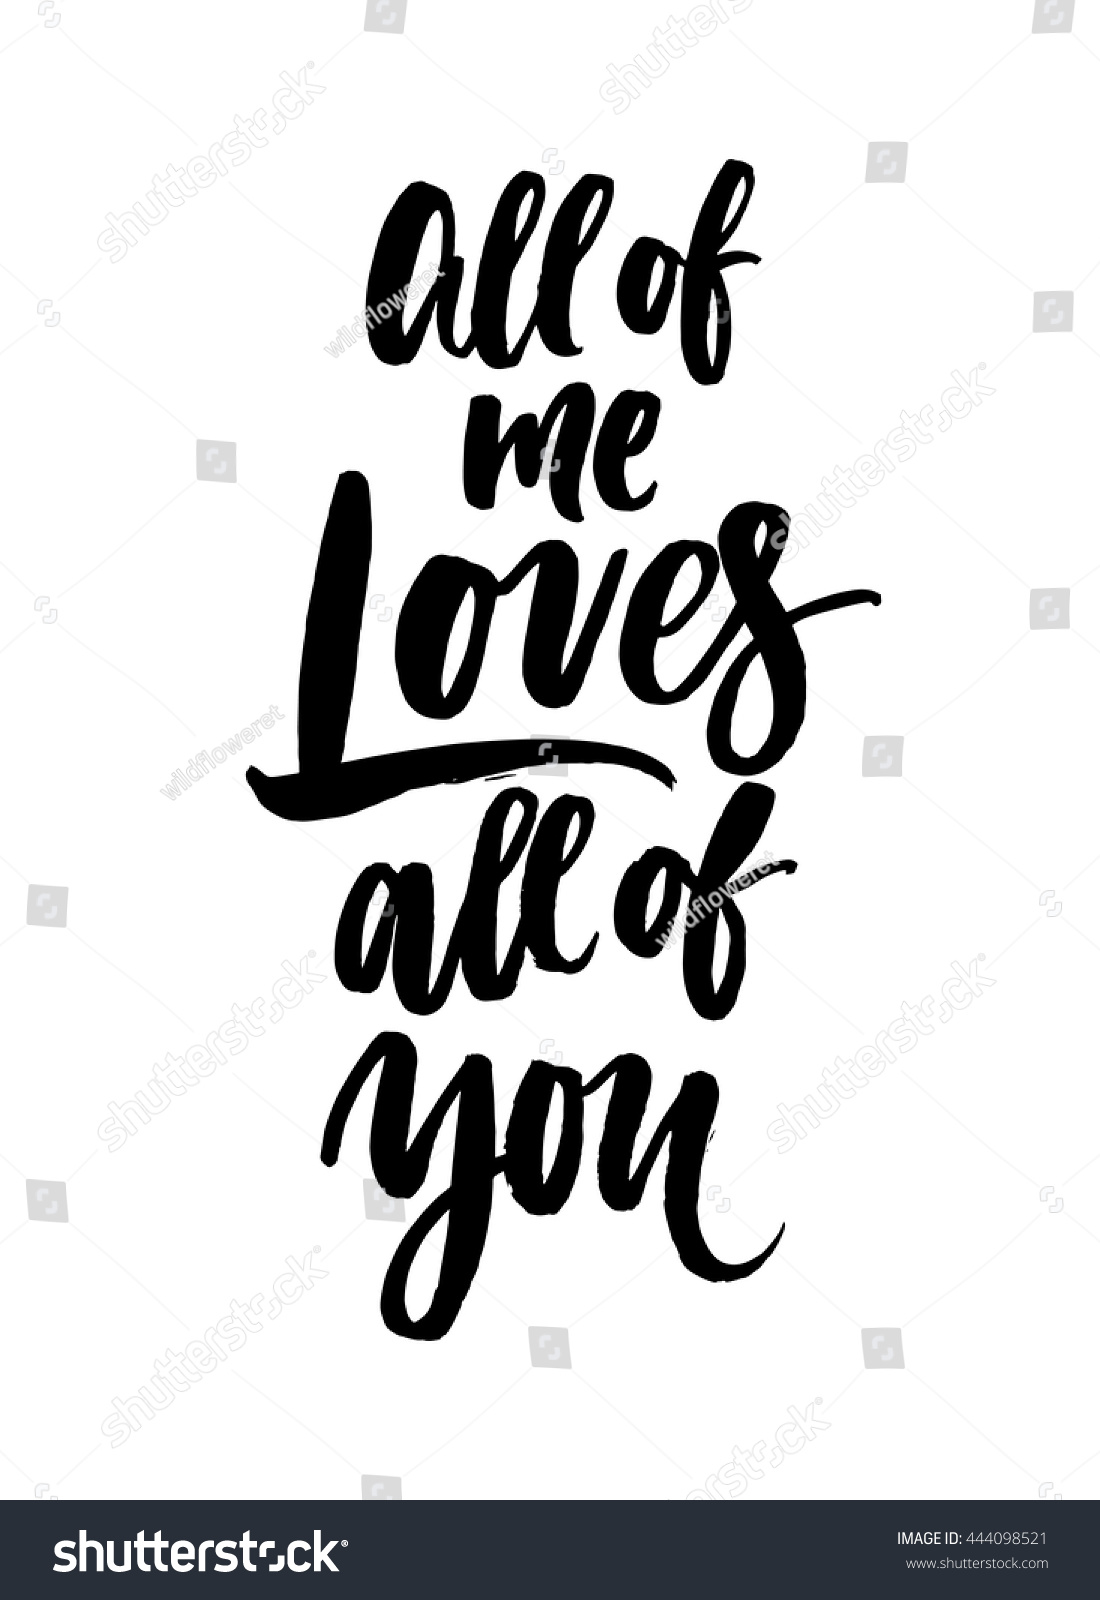 all of me loves all of you clip art cliparts. Black Bedroom Furniture Sets. Home Design Ideas